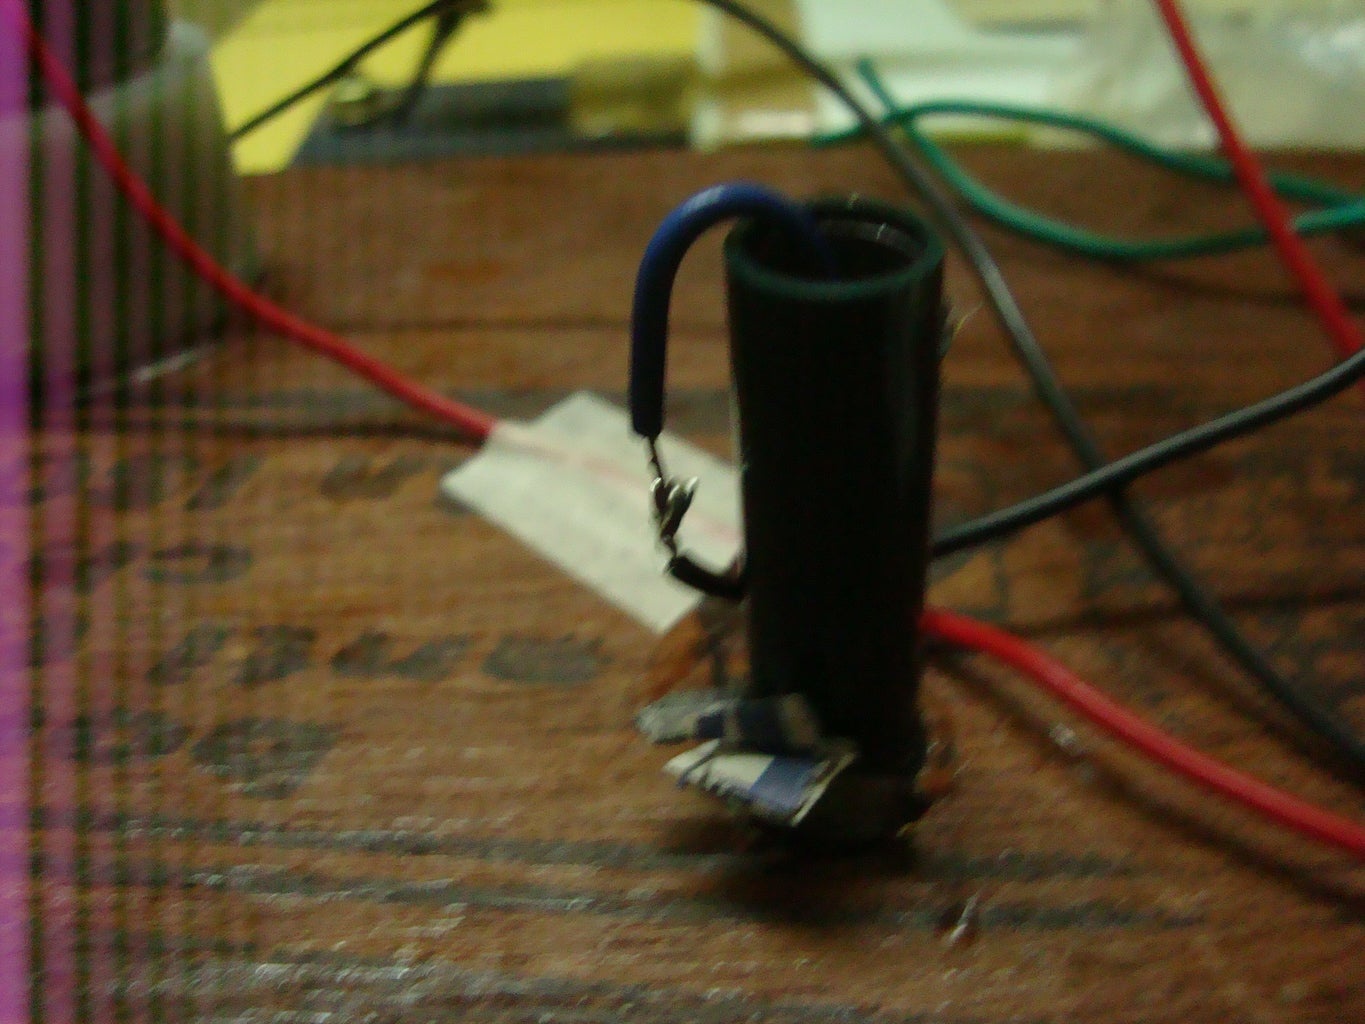 Pushing the Wires Through the Stem